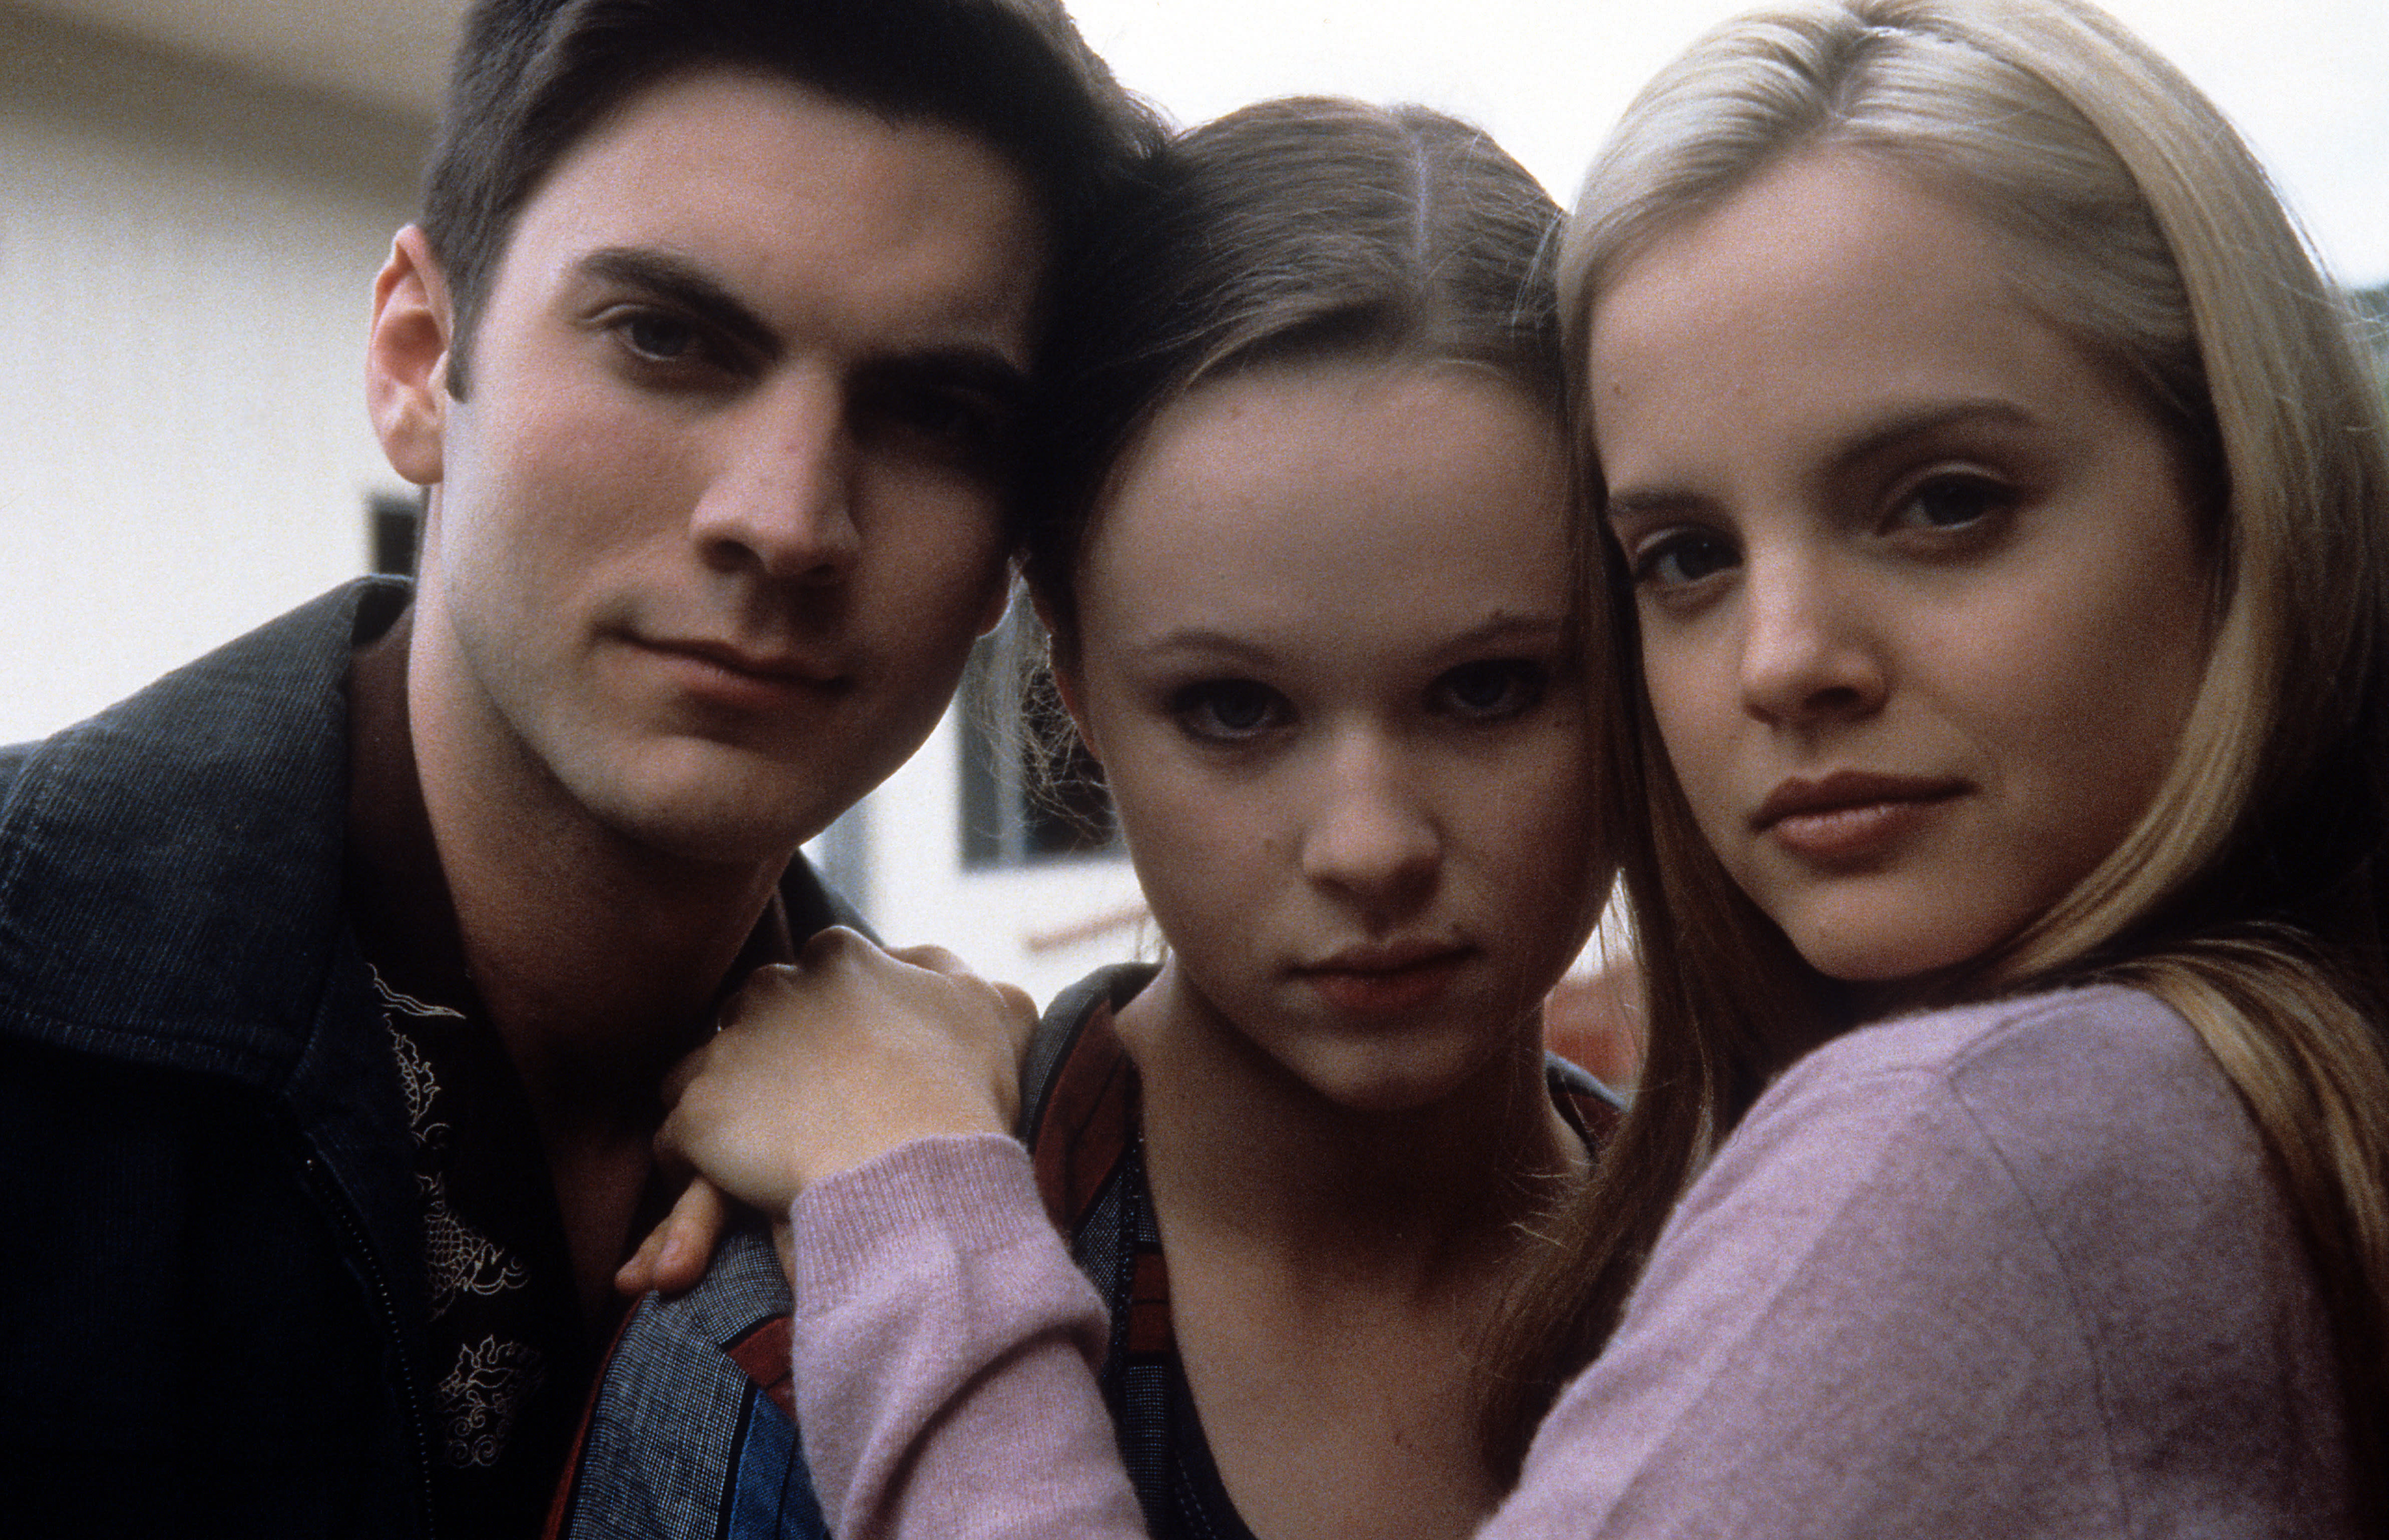 Wes Bentley, Thora Birch and Mena Suvari pose together in a scene from the film 'American Beauty', 1999. (Photo by DreamWorks SKG/Getty Images)